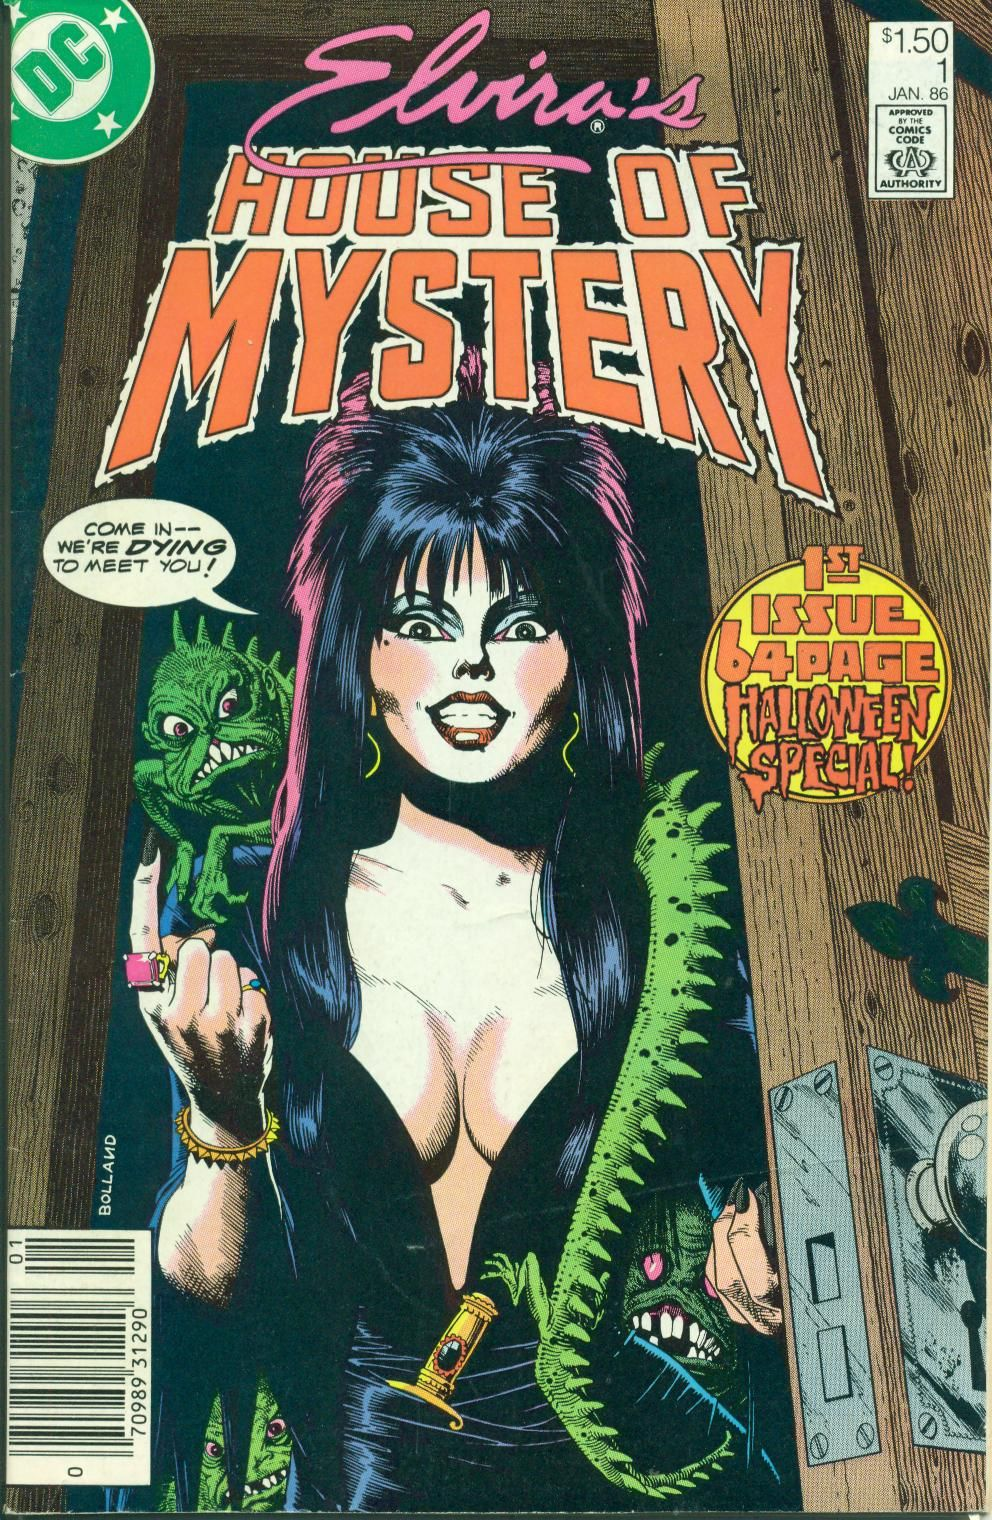 Cartoon Horror Porn Art - elvira comic | Elvira's House of Mystery #1 (Comic) | Shelf Porn